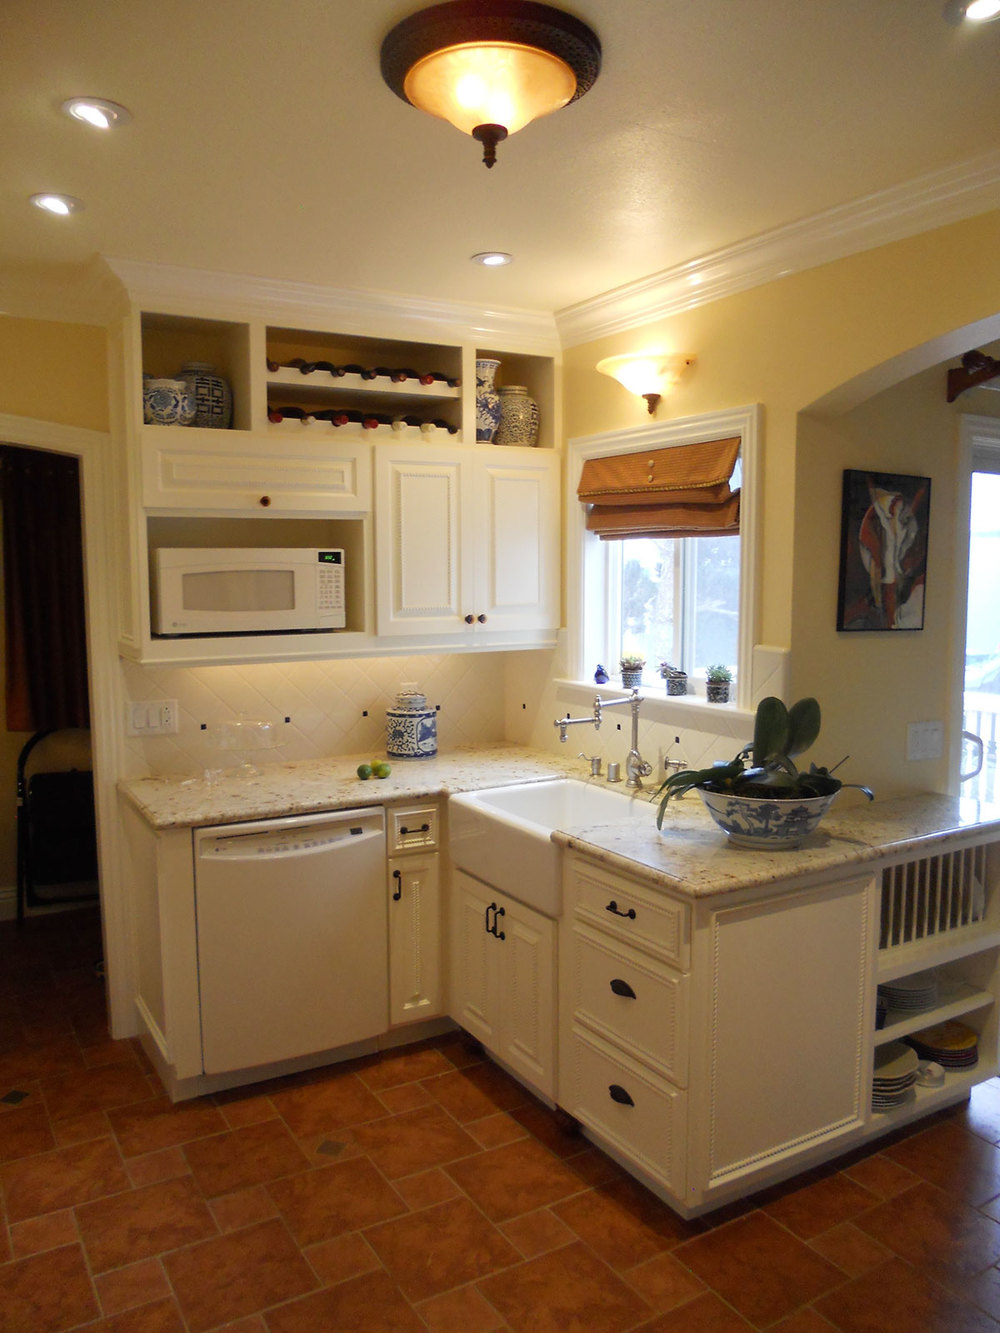 kitchen8.jpg